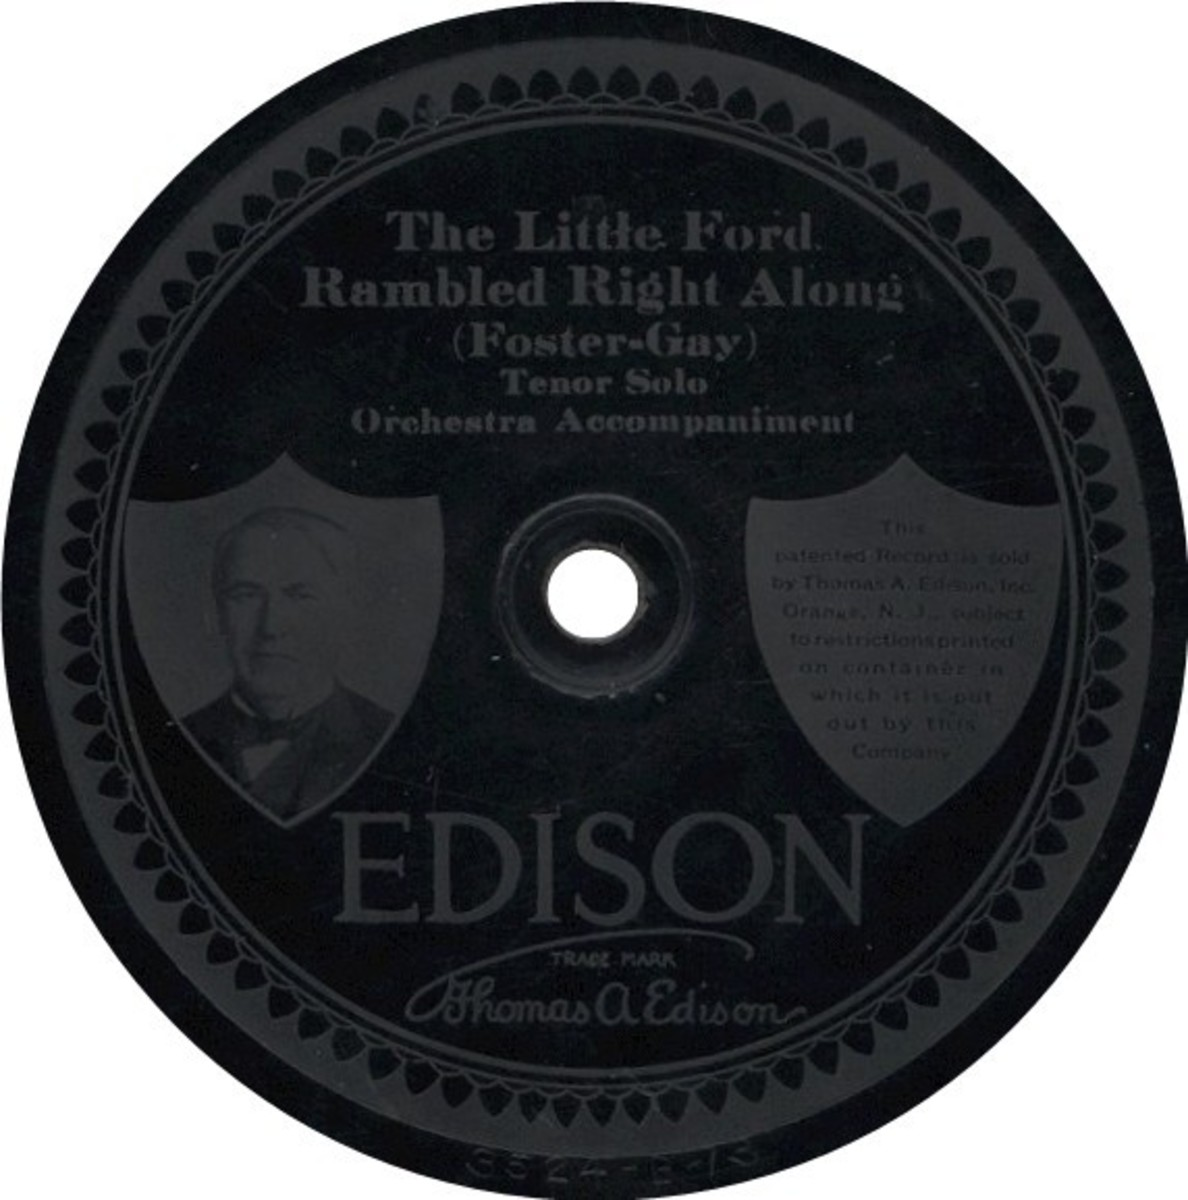 "Edison Diamond Disc Etched Label ""The Little Ford Rambled Right Along"" Recorded January 18, 1915"